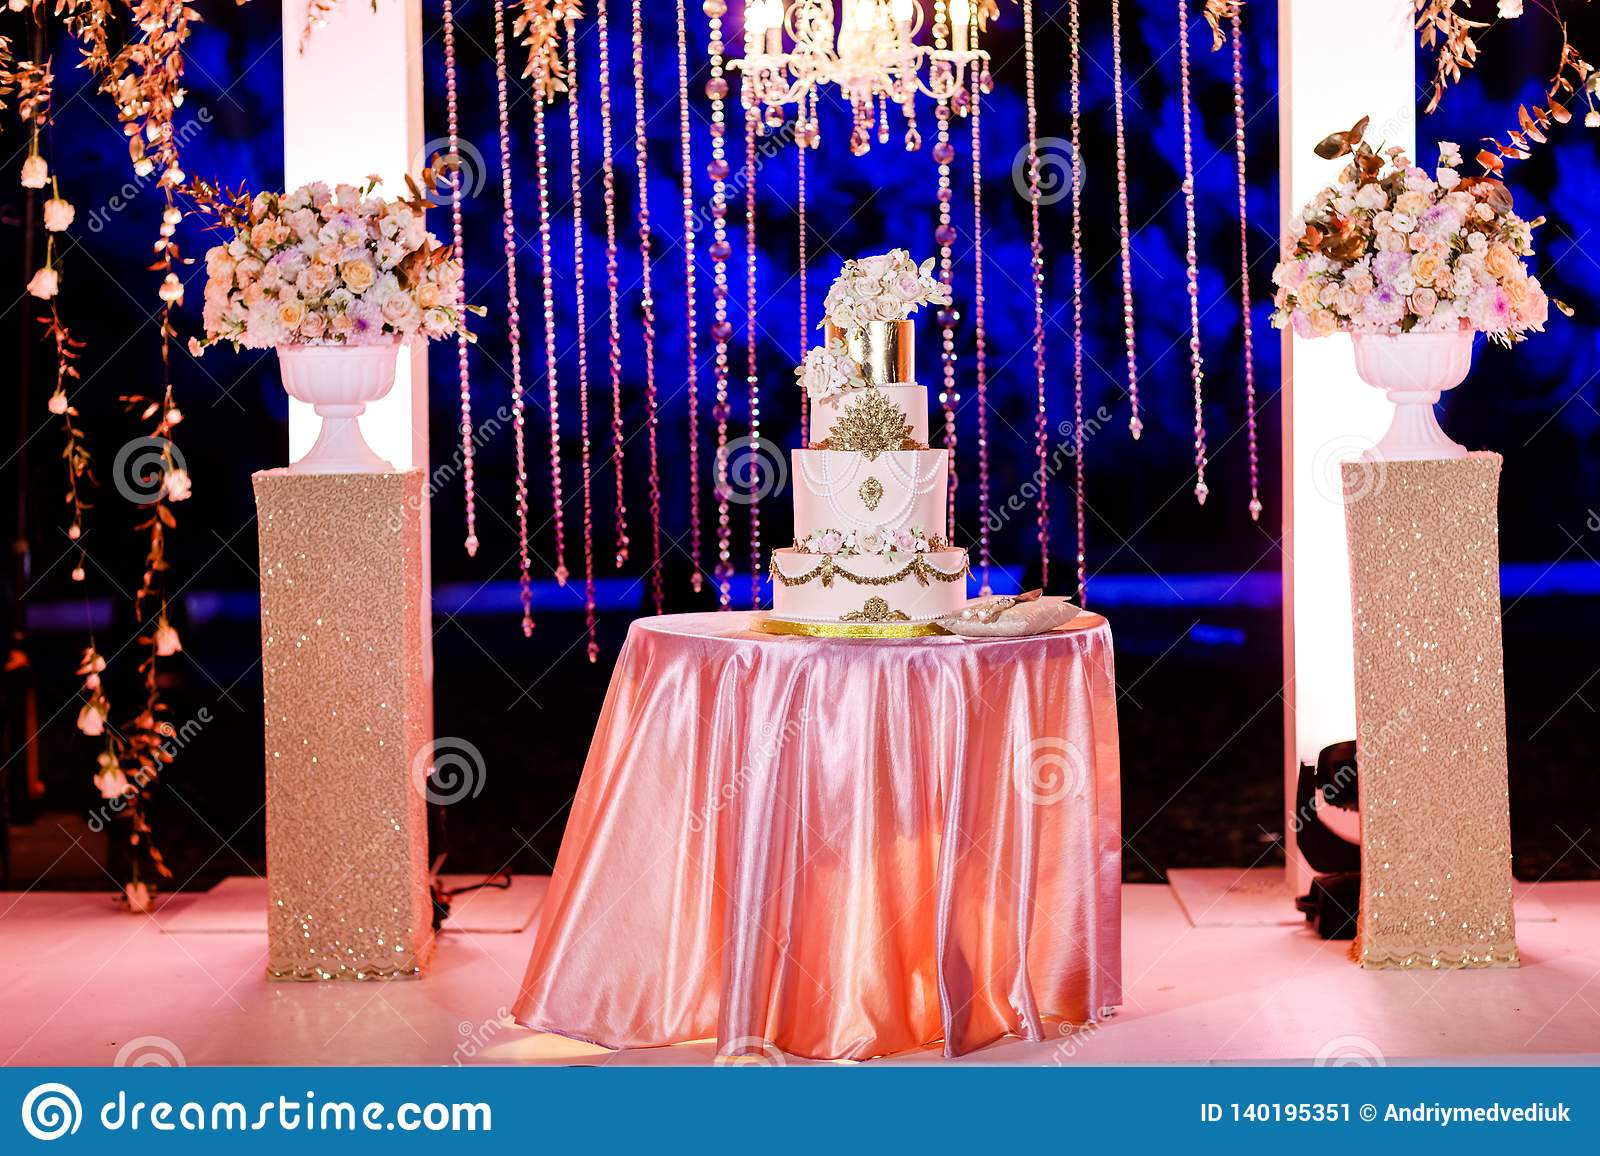 Table With A Wedding Cake Candles Light And Flowers Wedding Decoration Stock Image Image Of Beautiful Light 140195351